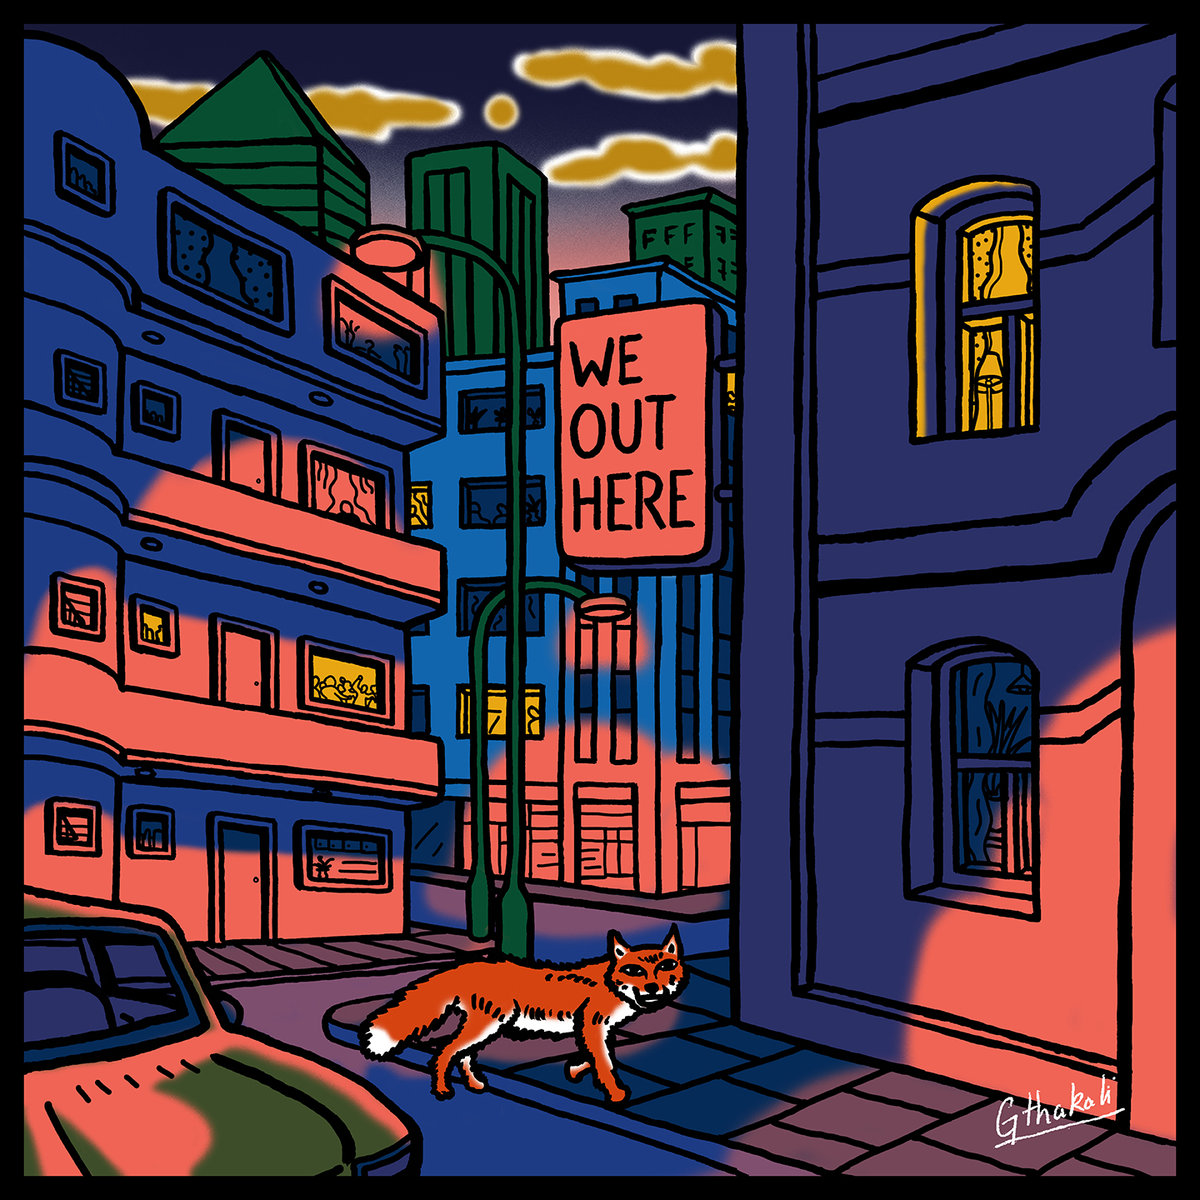 Album of the week: Various artists – We out here